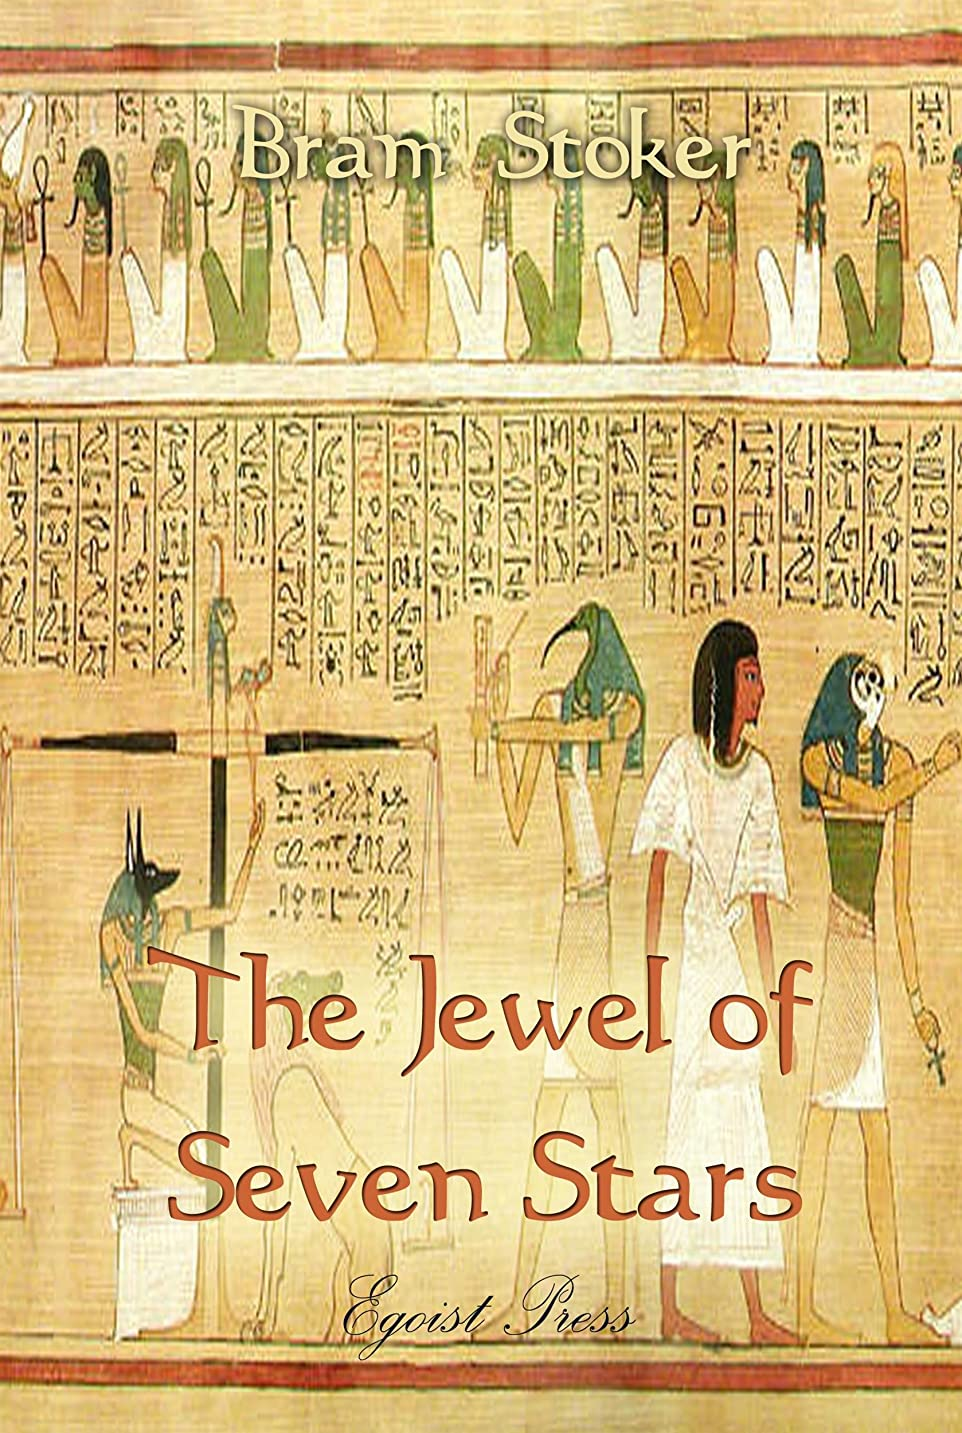 ノイズ報告書ラッカスThe Jewel of Seven Stars (Timeless Classic) (English Edition)